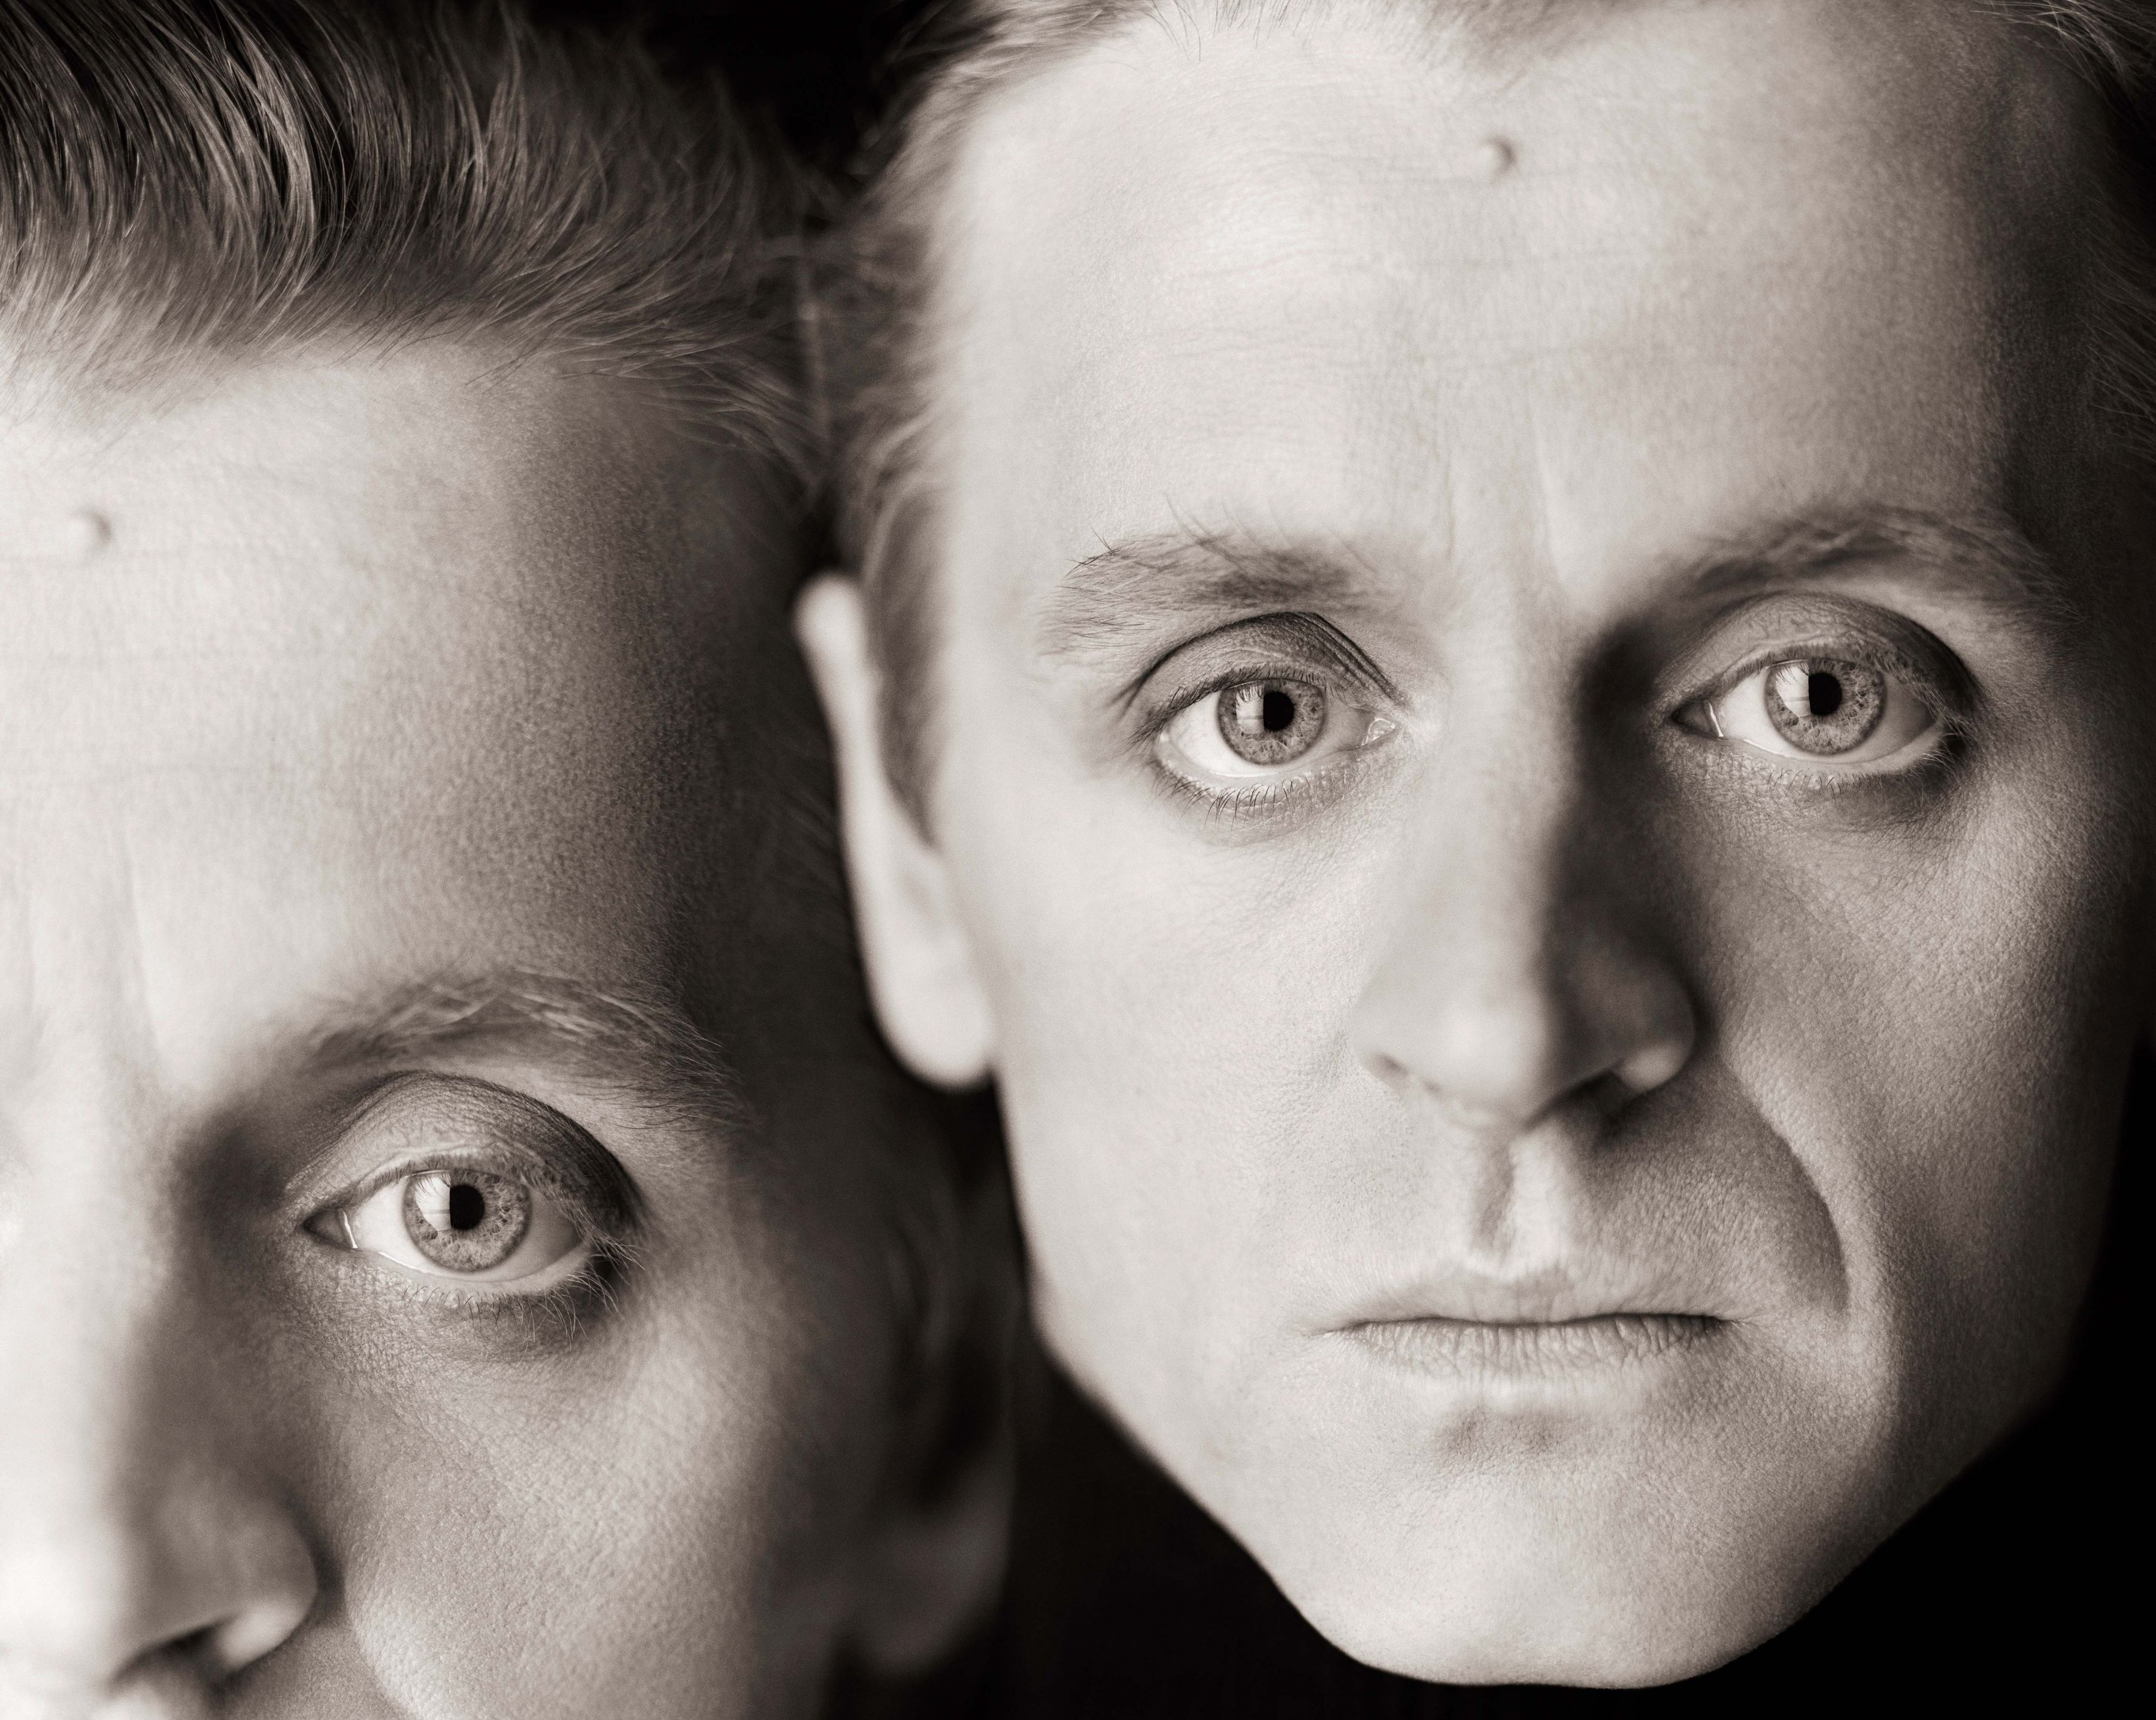 Mikhail Baryshnikov, Double Exposure, New York, 1987, Archival Pigment Print